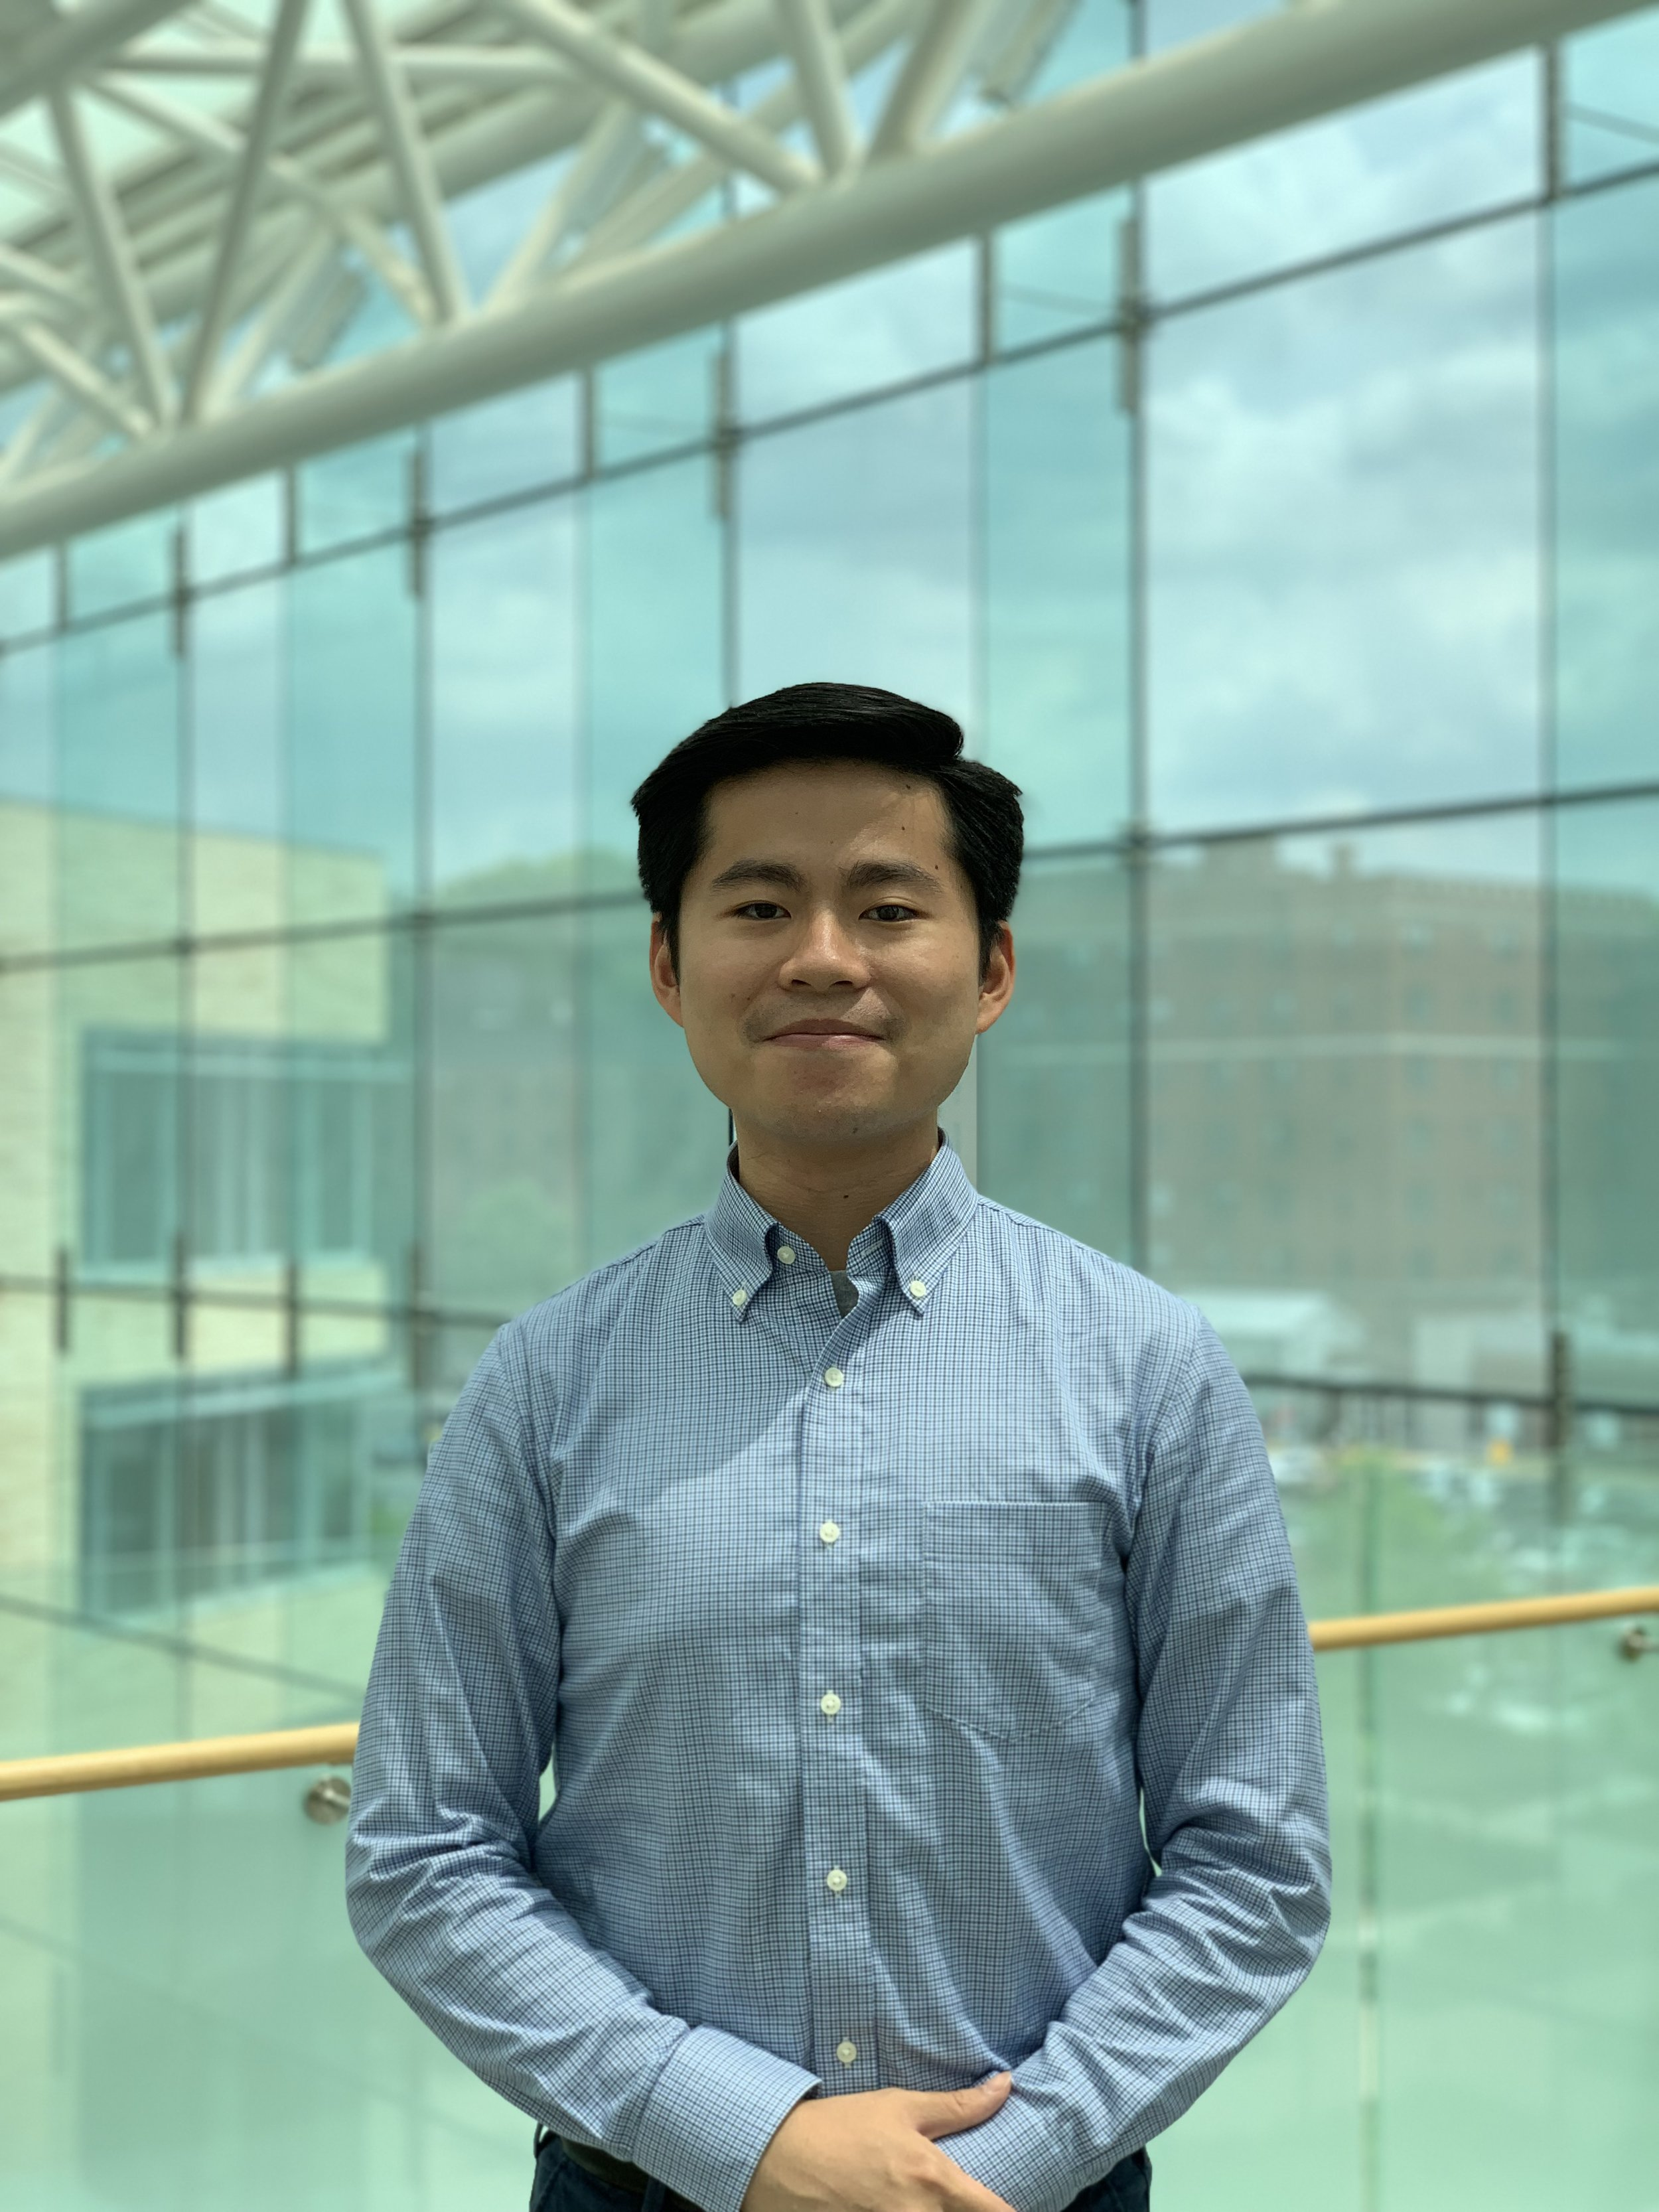 Kevin is a senior at the University of Pittsburgh in the College of Business administration, majoring in Accounting and Business Information Systems. Outside of the classroom, he is involved in Delta Sigma Pi, Taiwanese Scholars Society, and Liberty in North Korea.